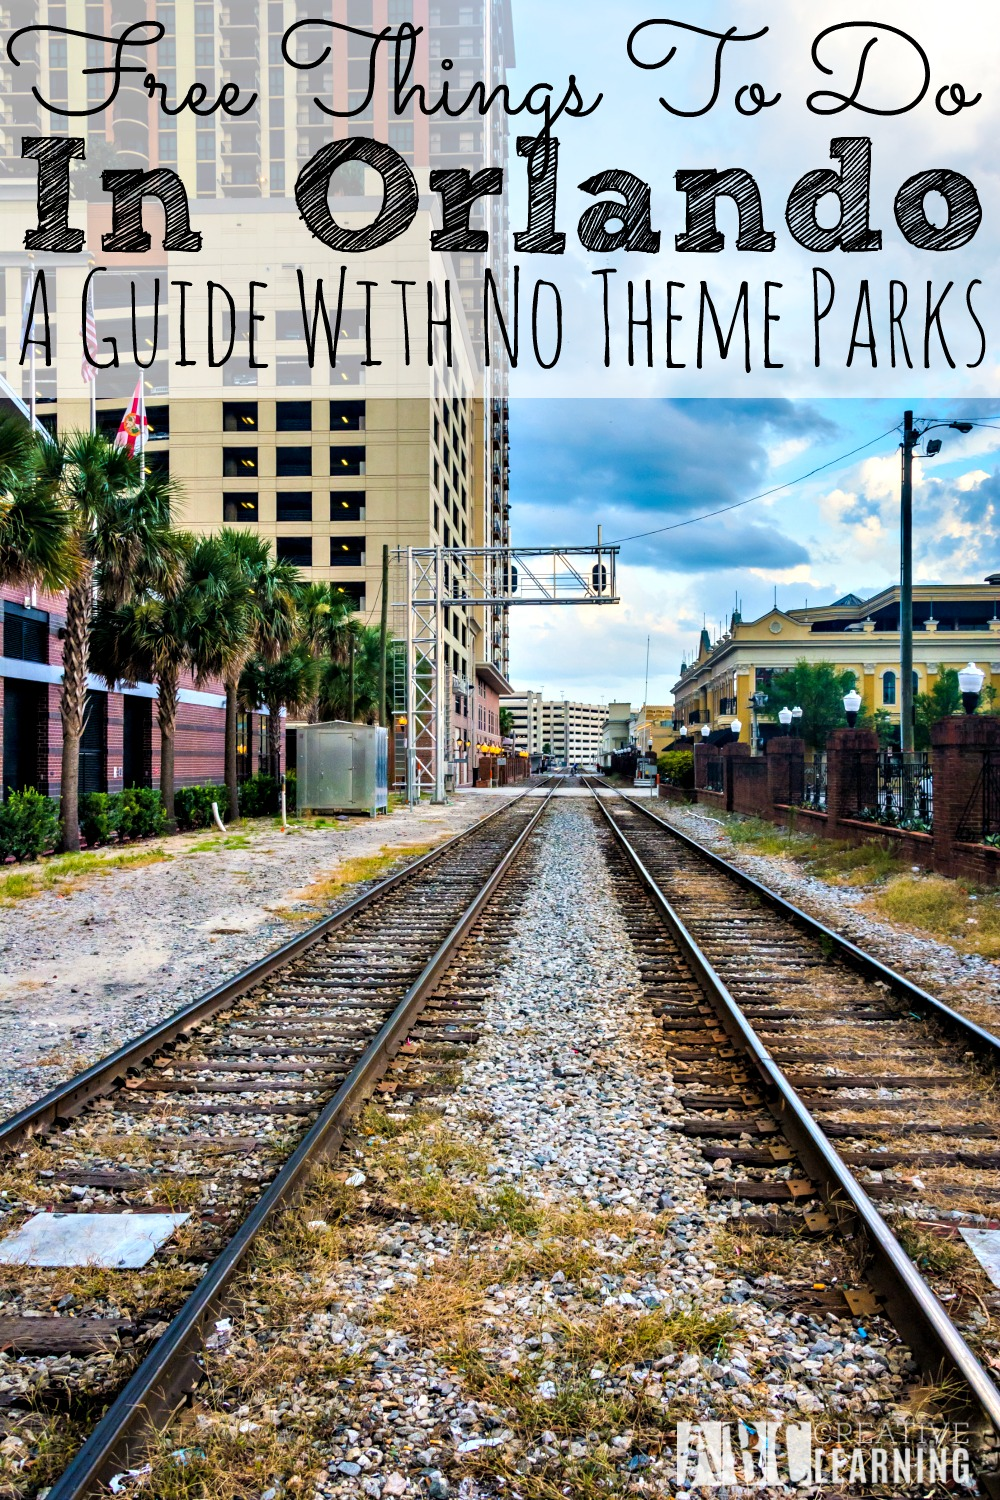 Free Things To Do In Orlando A Guide With No Theme Parks - abccreativelearning.com